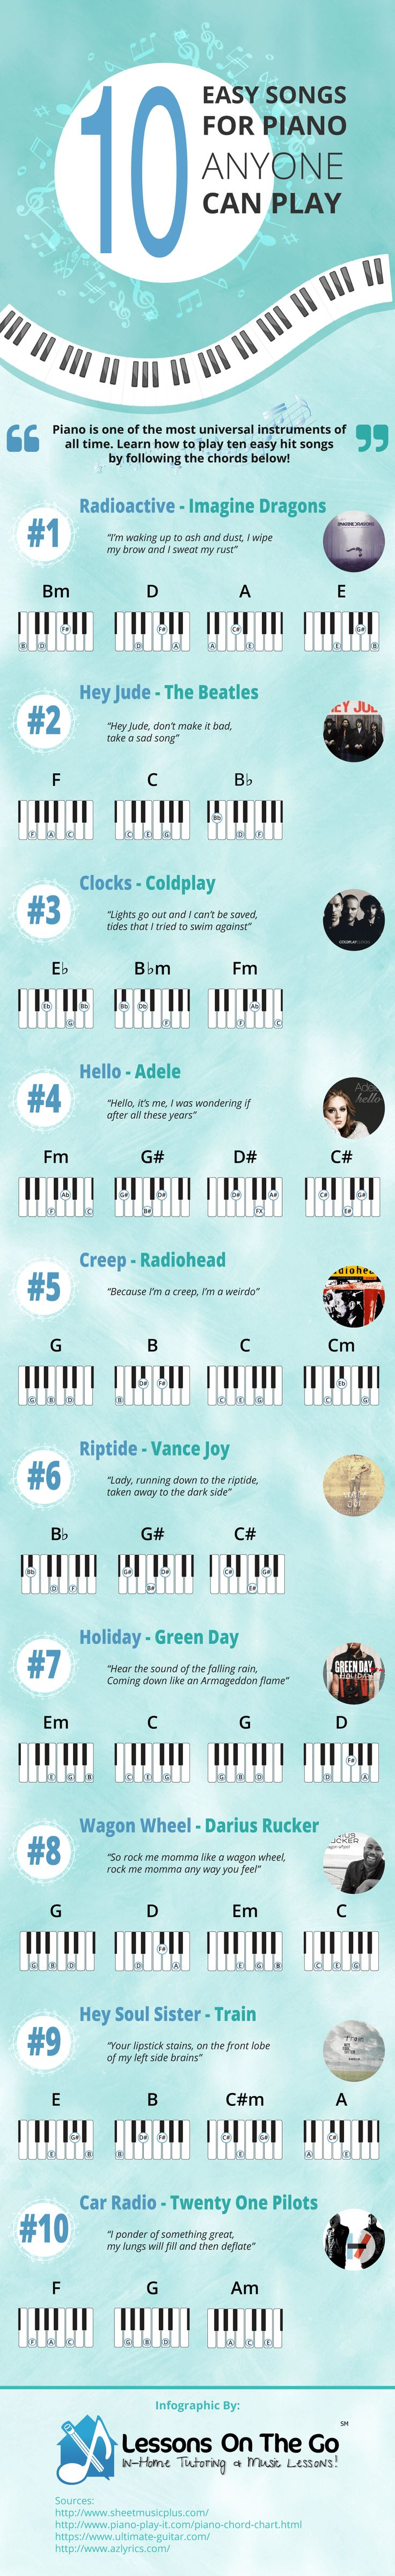 10 Easy Songs for Piano Anyone Can Play [Infographic] Learn how to play these hit songs in under 5 minutes! Do you have artists like Adele, Twenty One Pilots, or Imagine Dragons on your playlist? If you've taken piano lessons or are a complete beginner, these hit songs are easy to learn. With a little